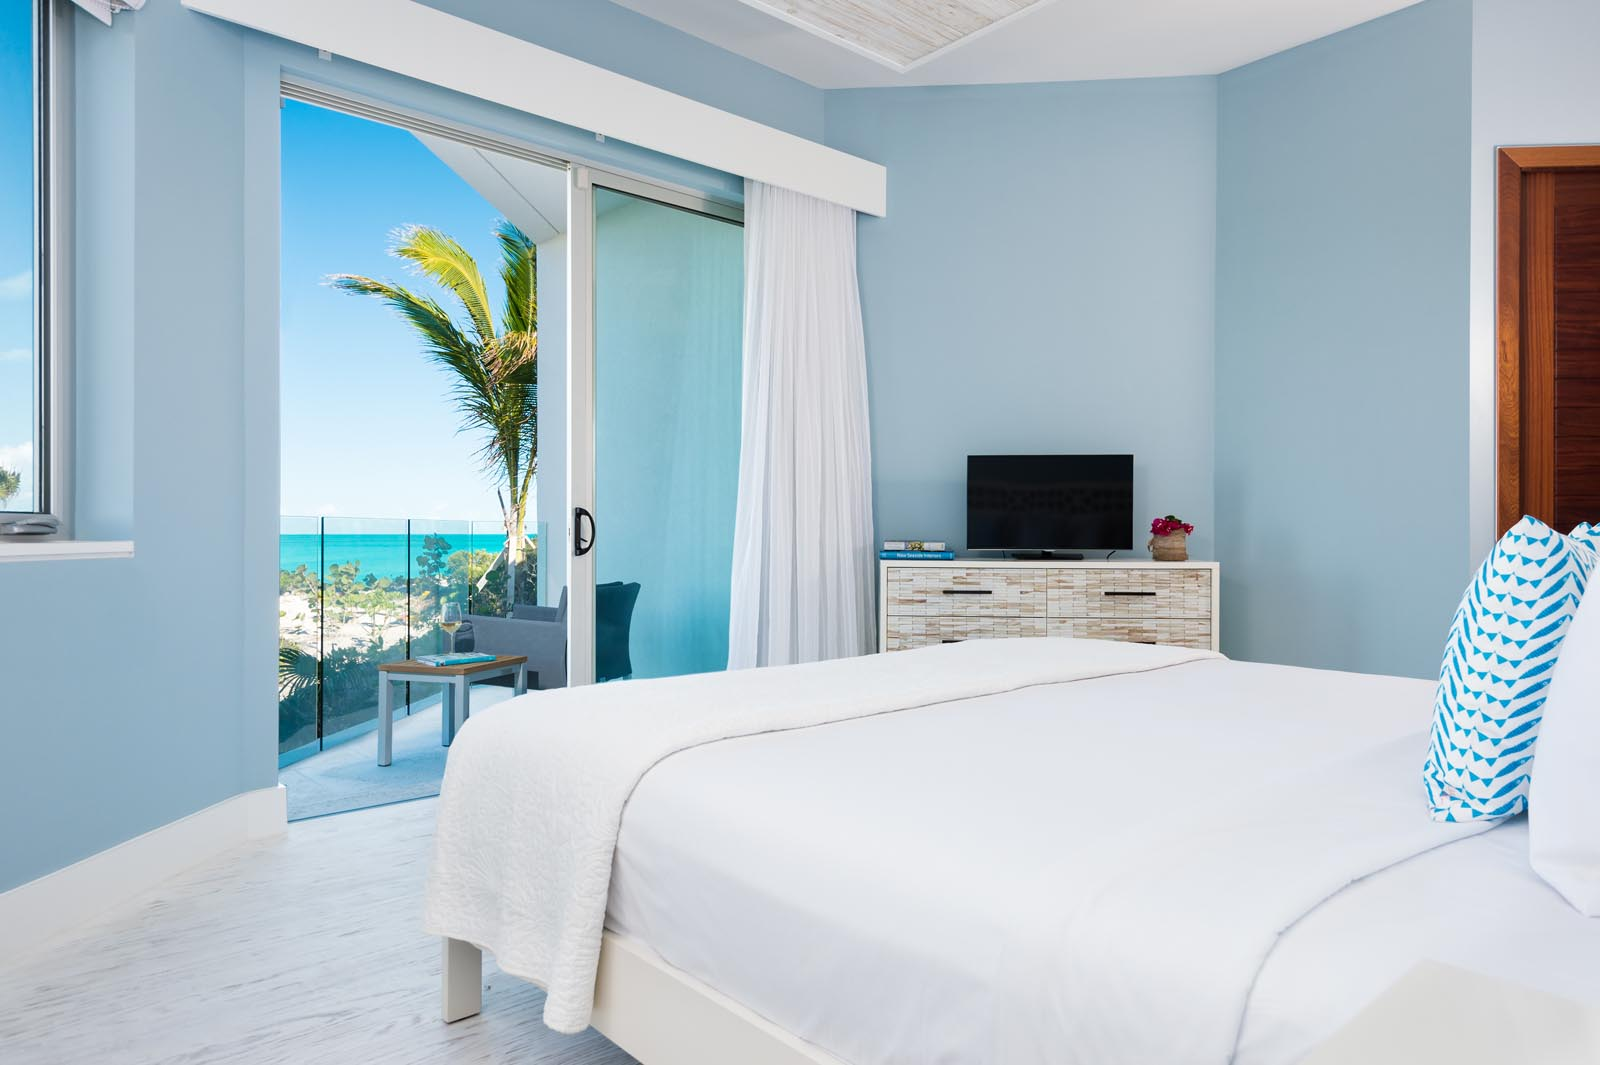 Villa Aguaribay, Long Bay Beach, Providenciales (Provo), Turks and Caicos Islands offers master bedrooms with stunning ocean views.